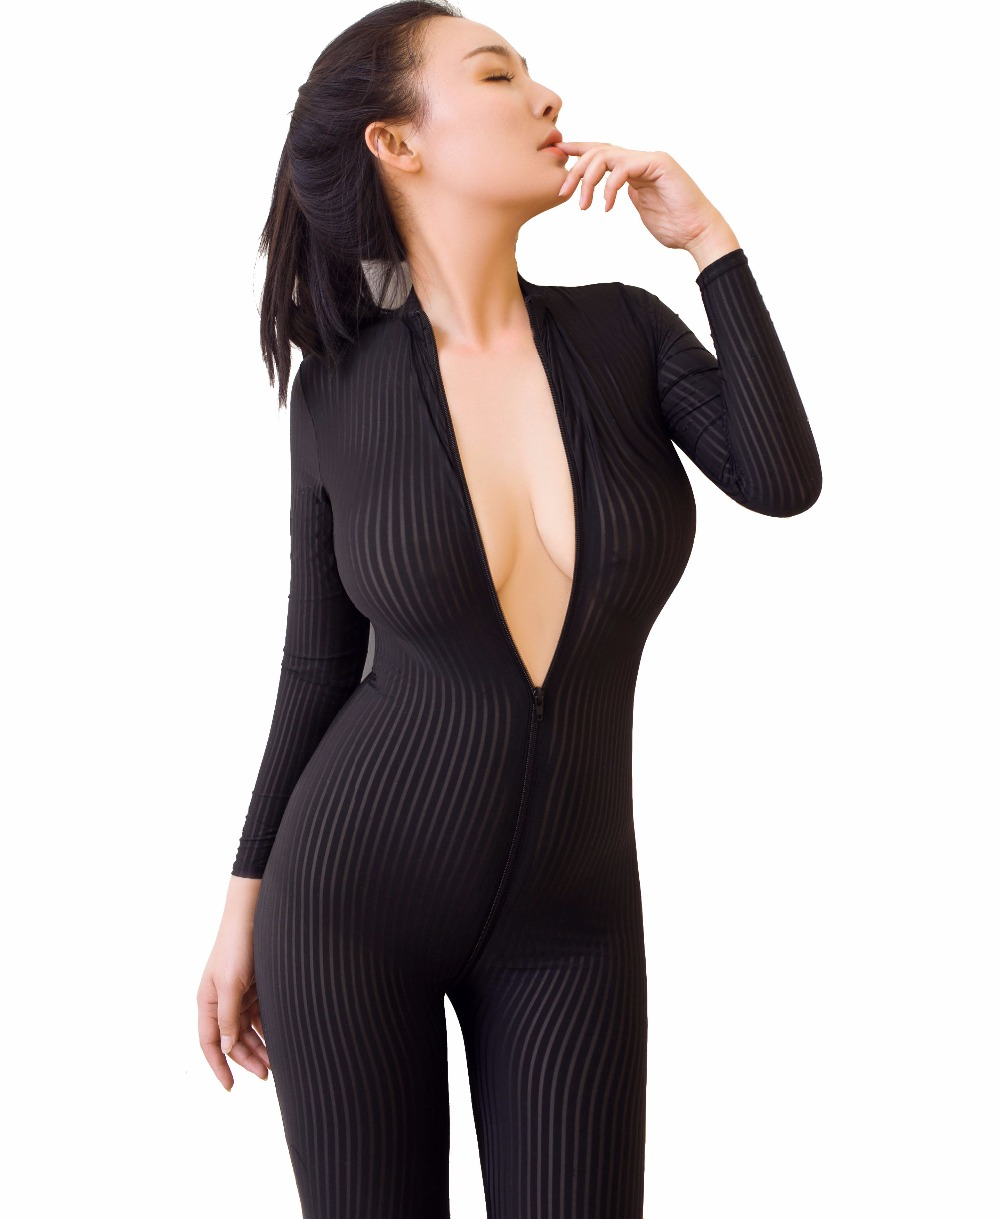 Sexy Sheer Vertical Stripes Wild Up to Crotch Zipper Snug Fit Catsuit Bodysuit Tights Jumpsuit Zentai Onesie